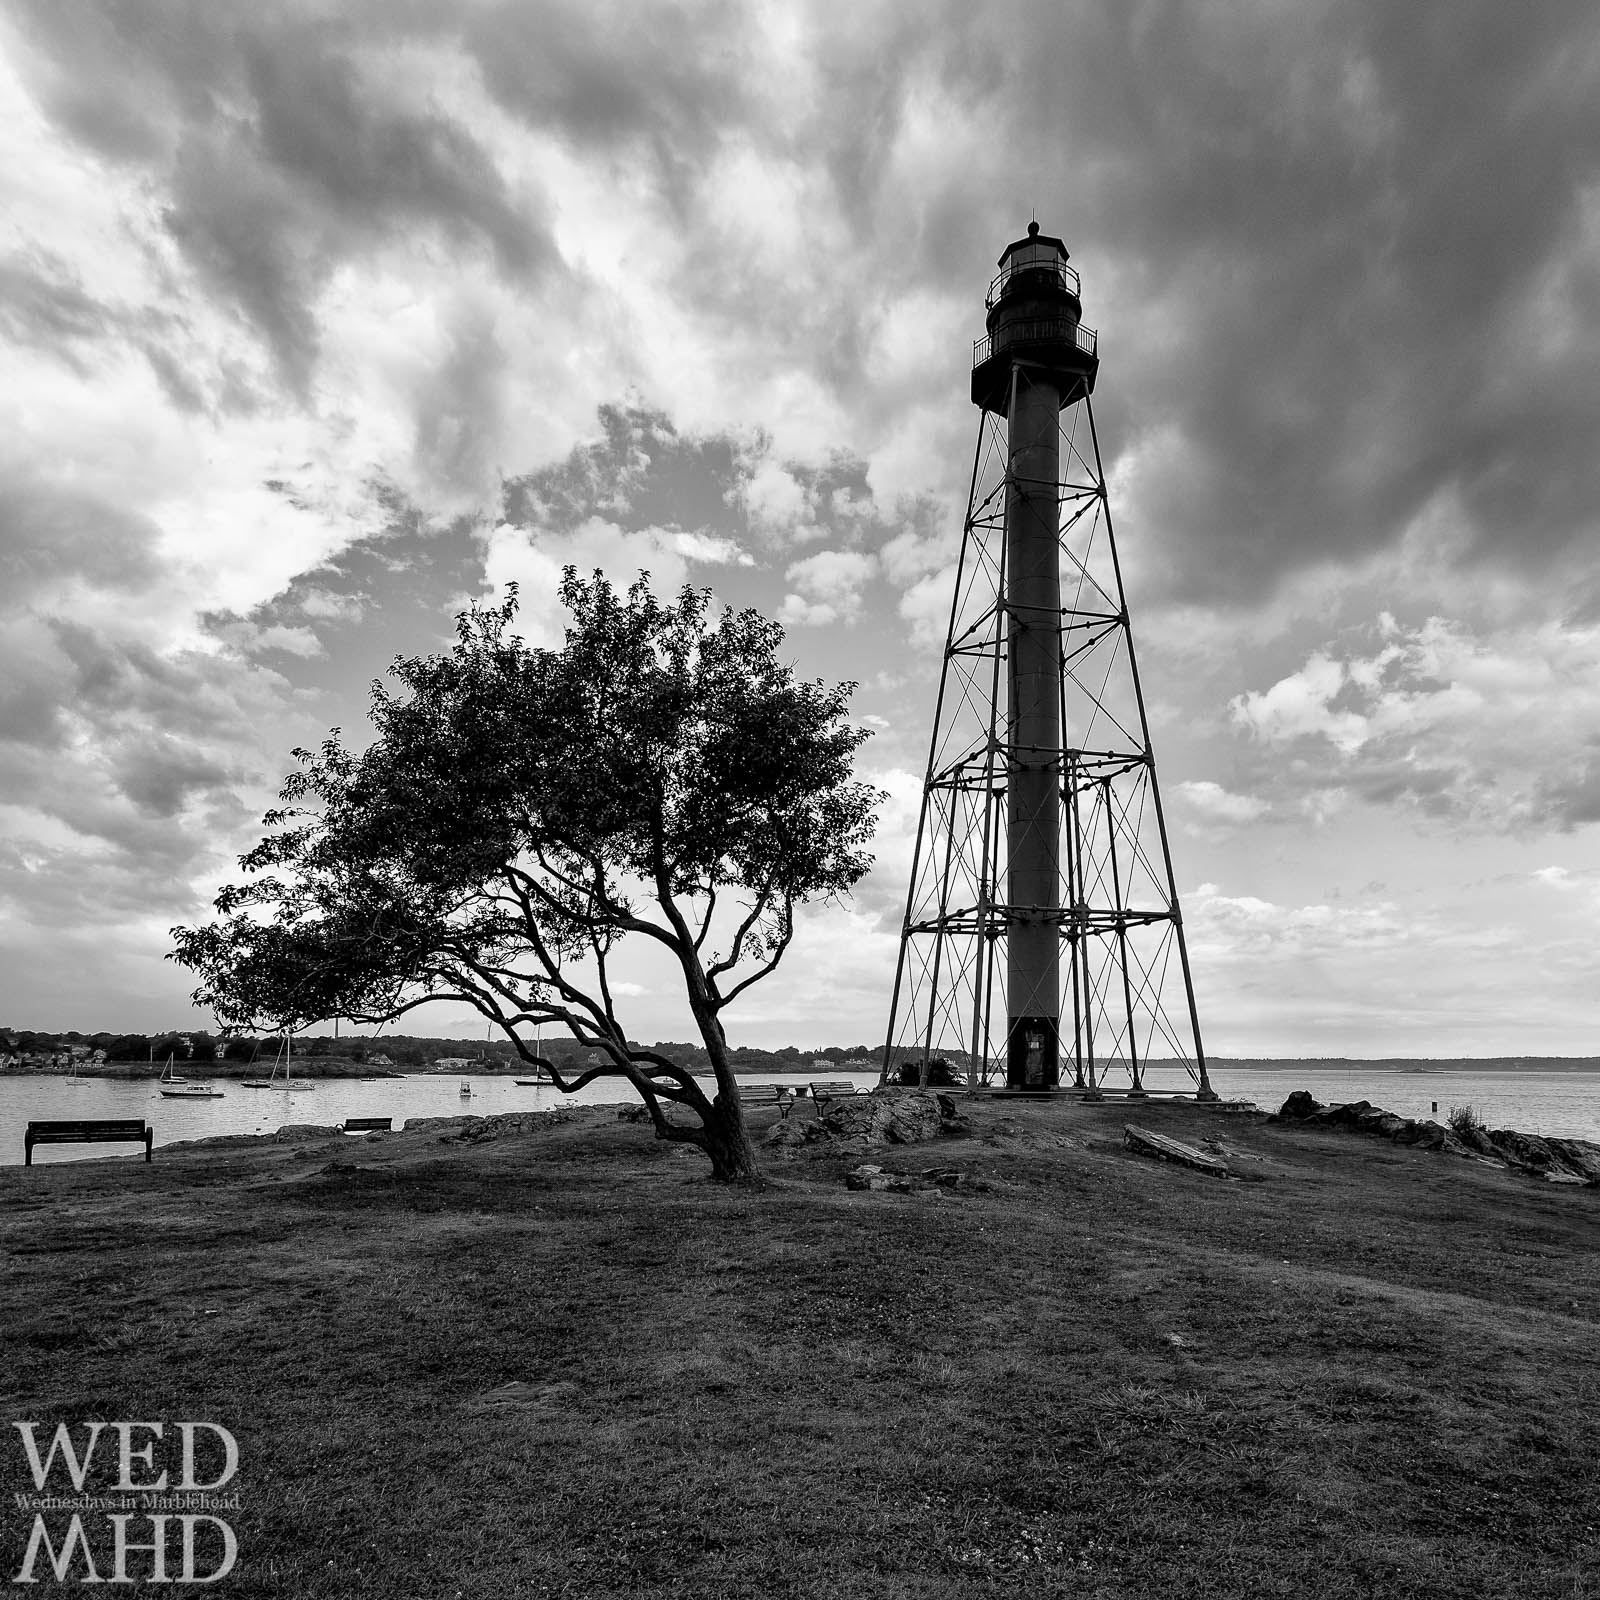 A weathered tree steals focus from Marblehead Light in this black and white image captured at Chandler Hovery Park